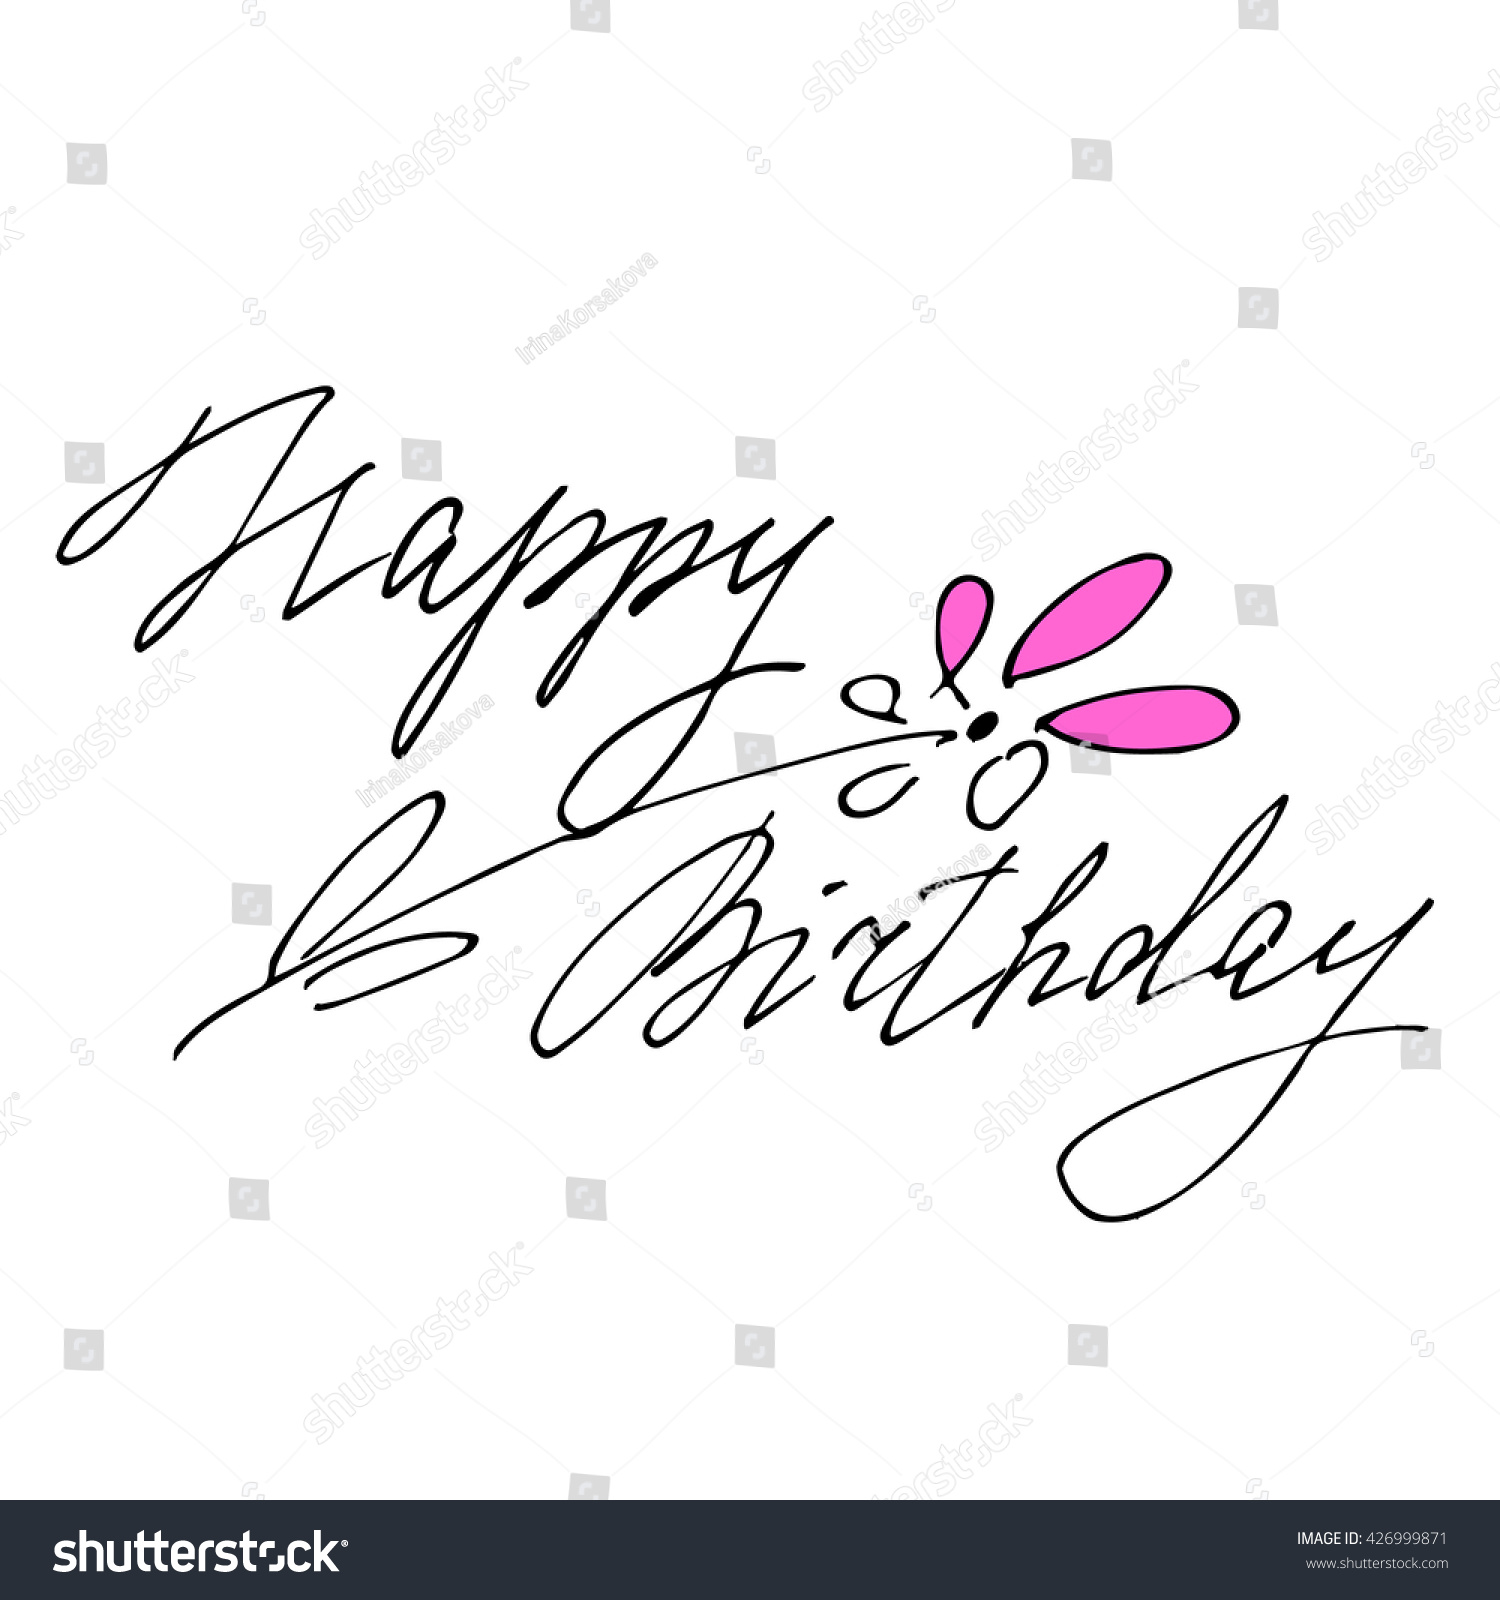 Happy birthday text flower hand drawn stock vector royalty free happy birthday text with flower hand drawn graphics vector eps 10 black and m4hsunfo